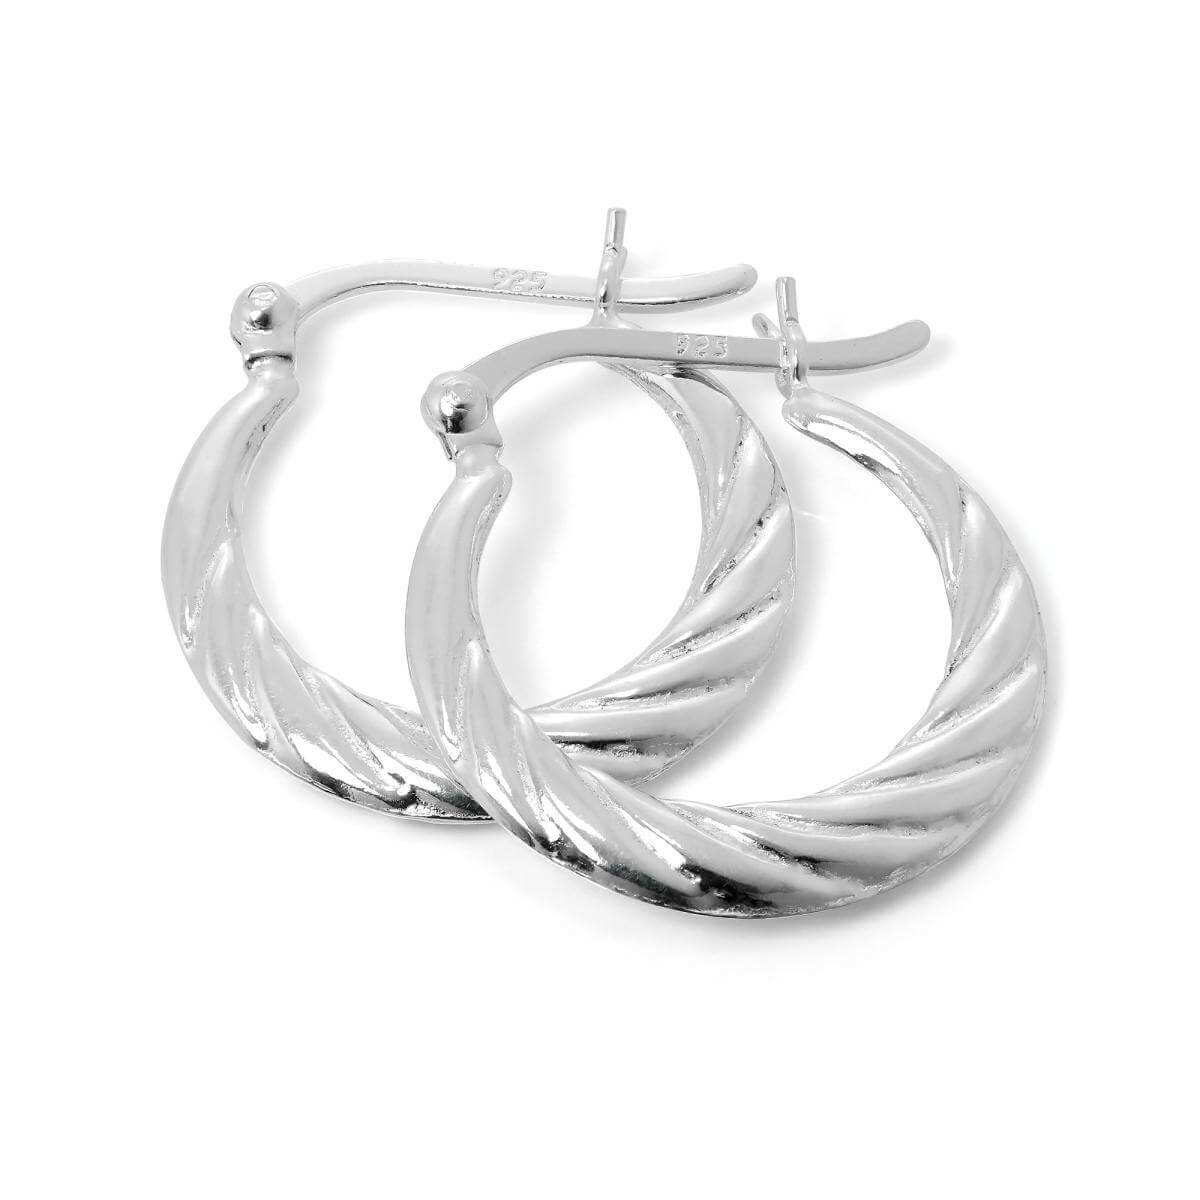 b3743faef Sterling Silver Twisted Creole 19mm Hoop Earrings | JewelleryBox.co.uk